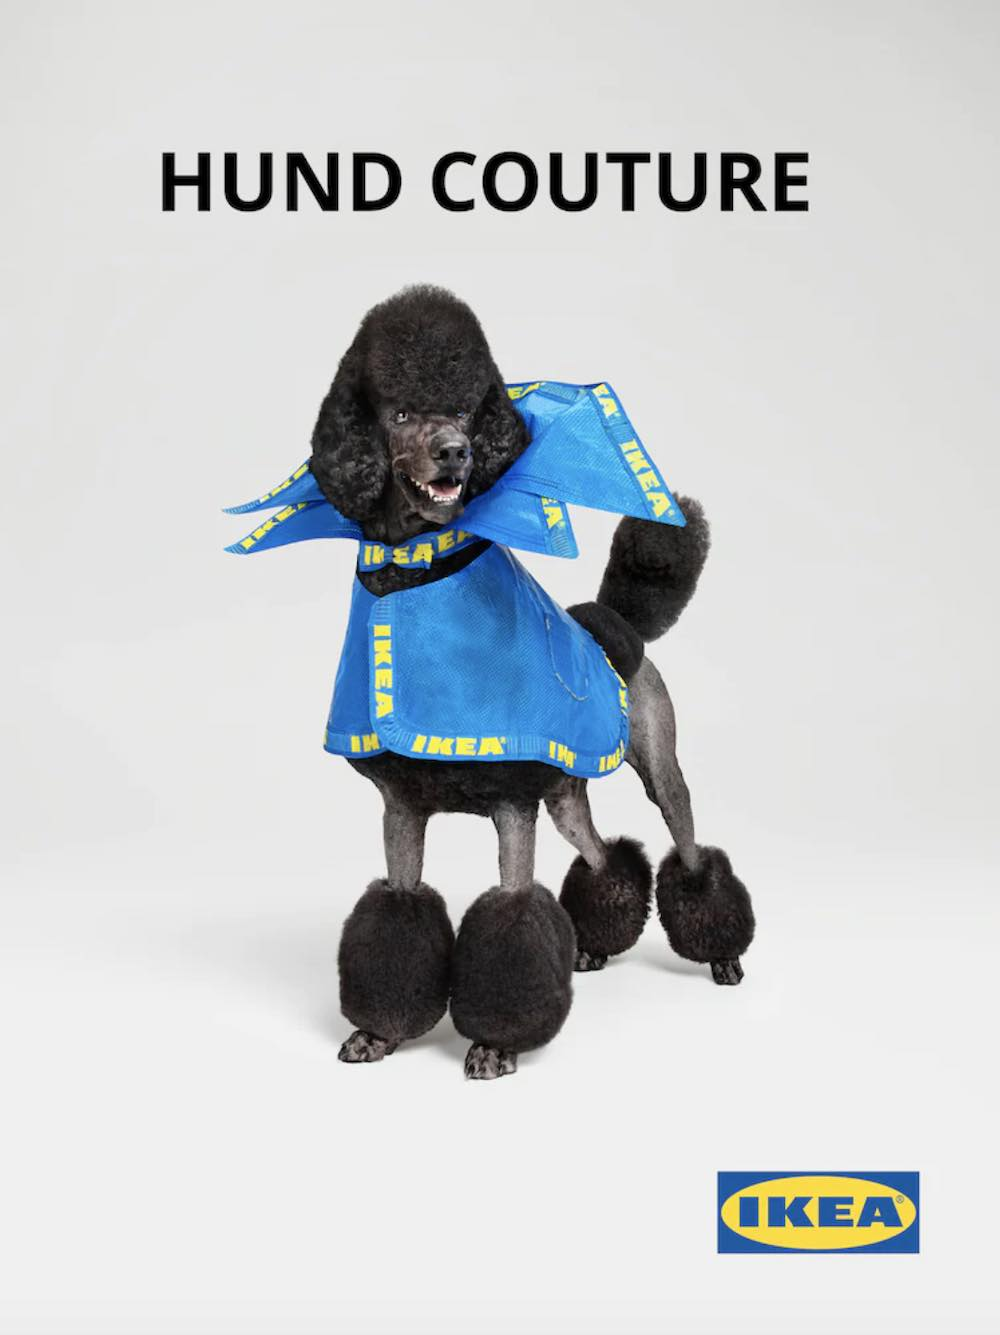 IKEA's Hund Couture - April's Fool.